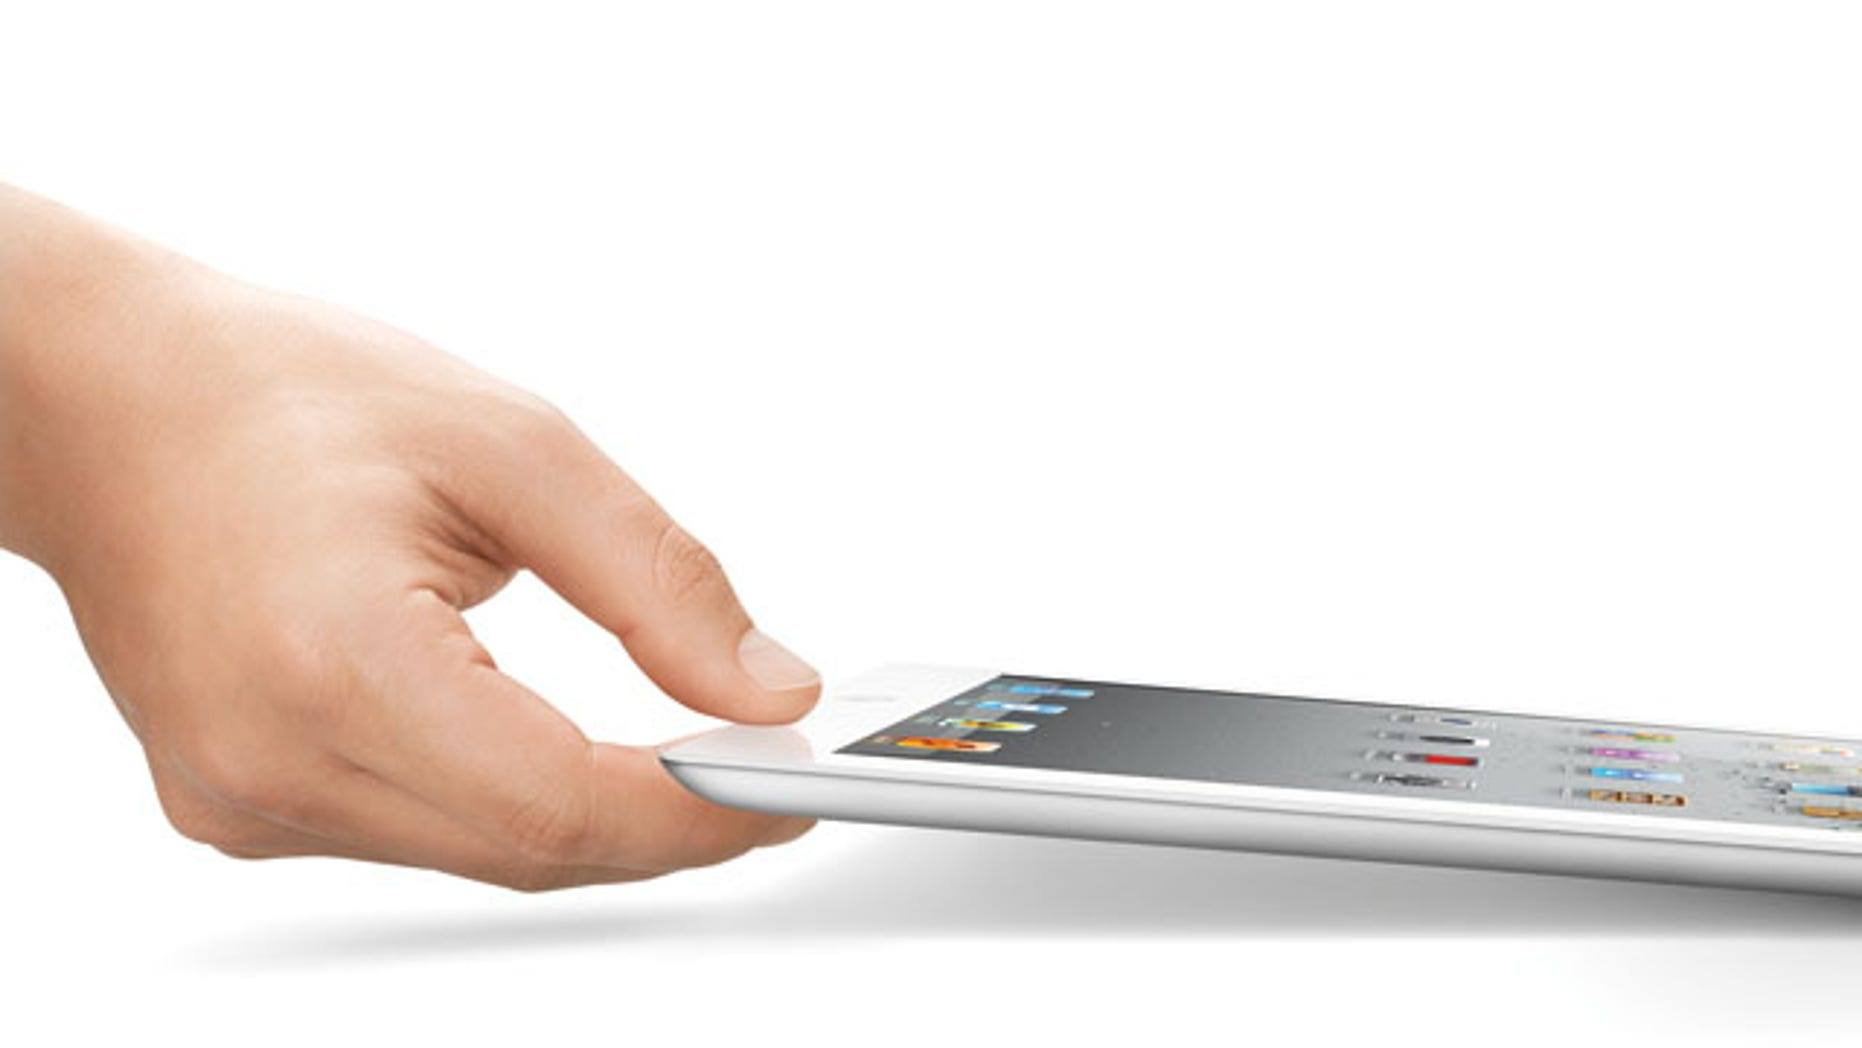 Is a smaller version iPad coming out?